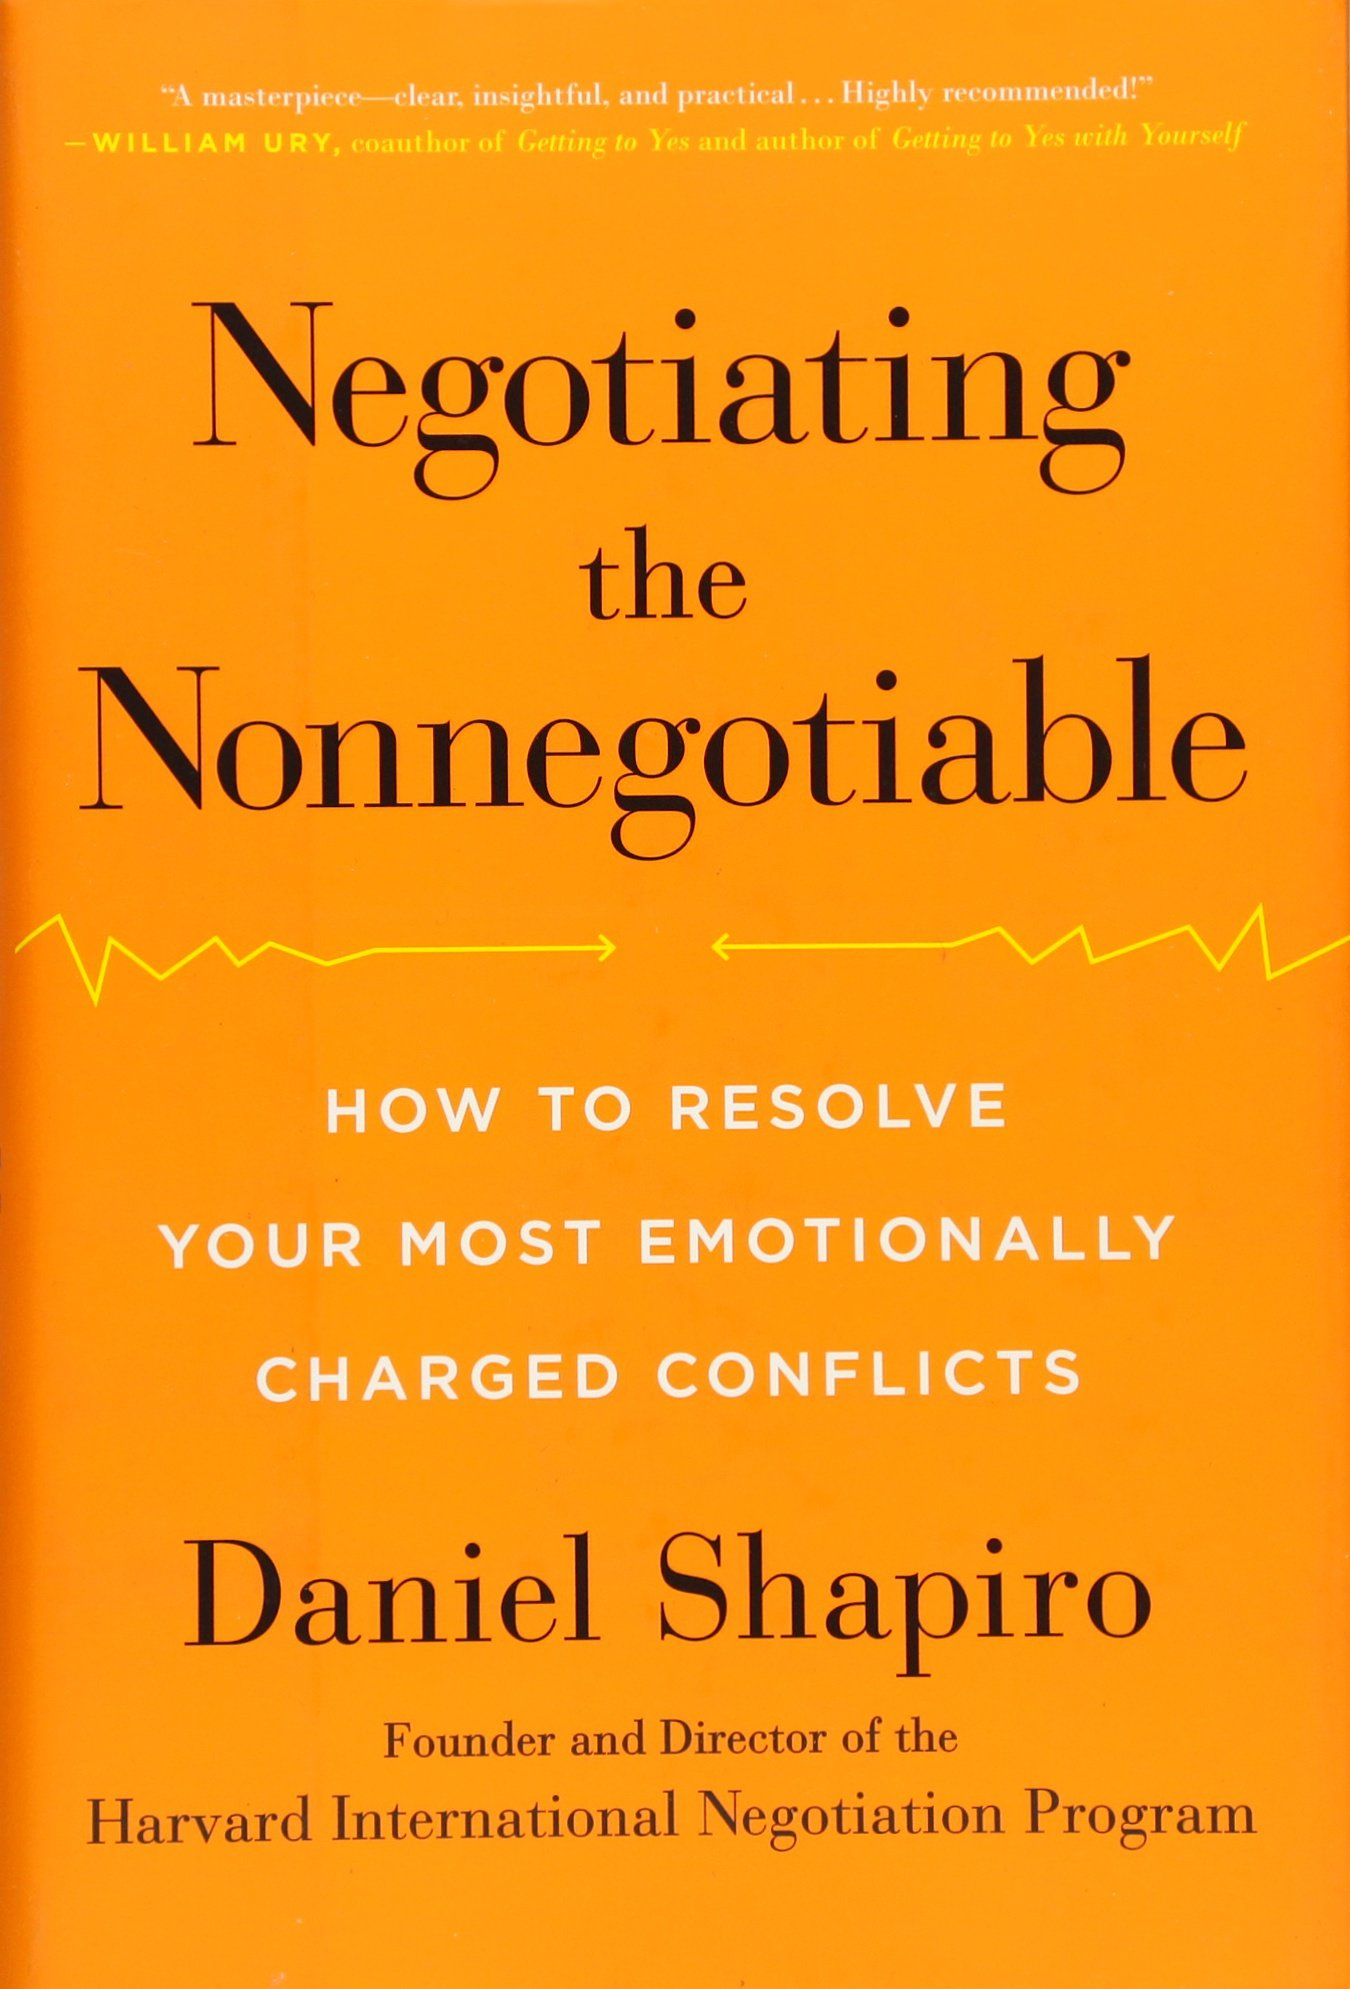 Negotiating The Nonnegotiable: How To Resolve Your Most Emotionally Charged  Conflicts: Daniel Shapiro: 9780670015566: Amazon: Books